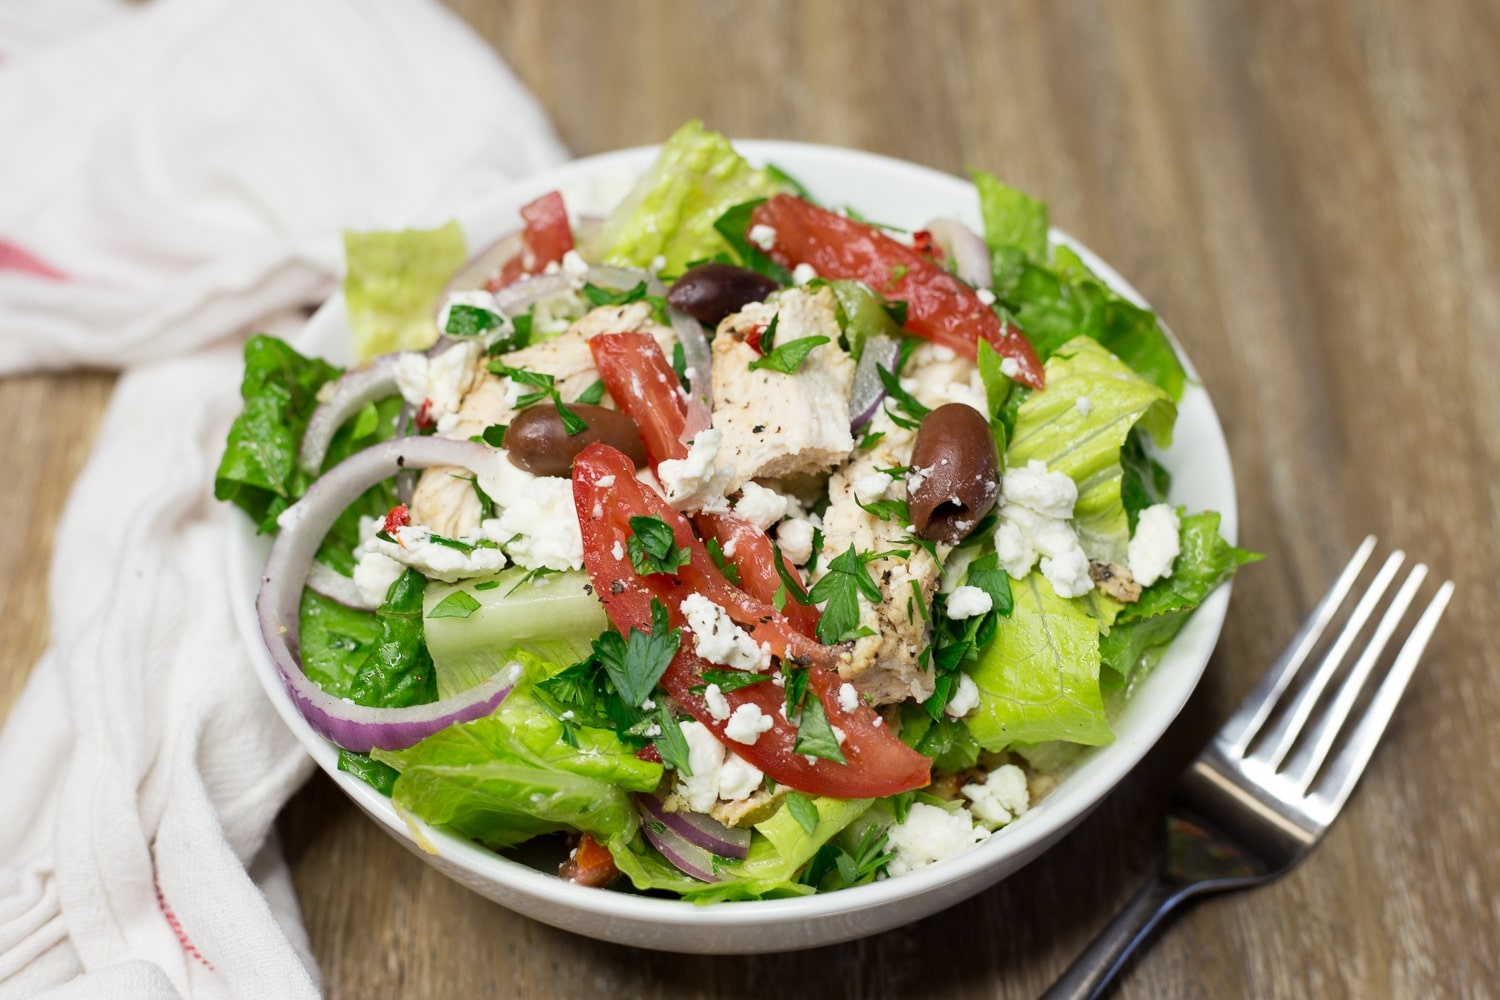 Greek chicken salad is a fresh, healthy salad that is hearty too! |artzyfoodie.com|